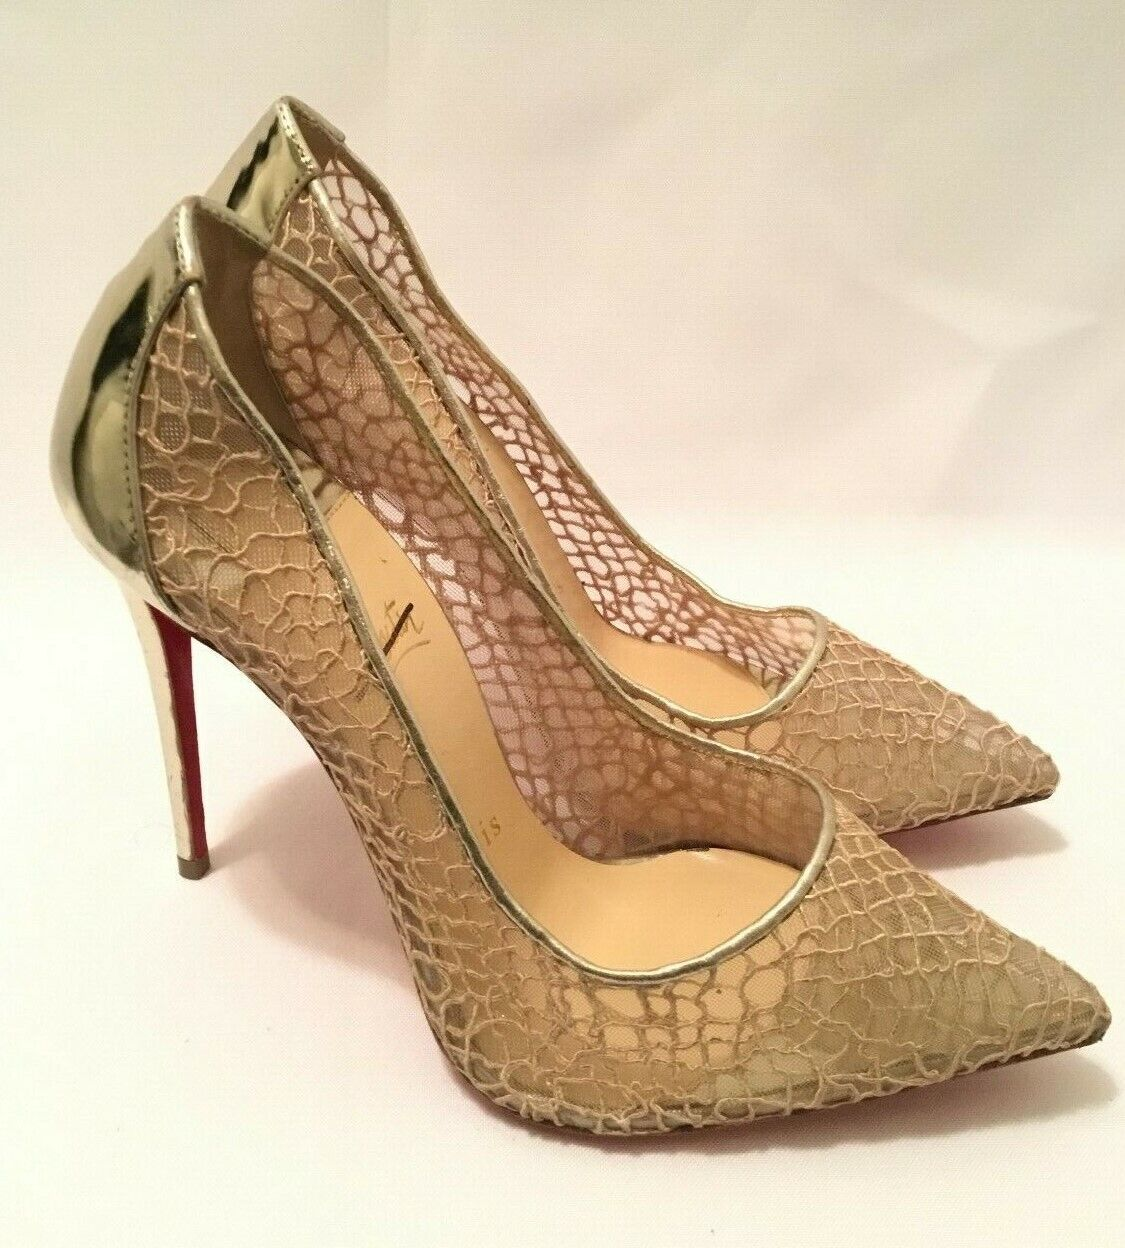 Christian Louboutin Pigalle Follies Gold Resille 100 Fishnet Size 37